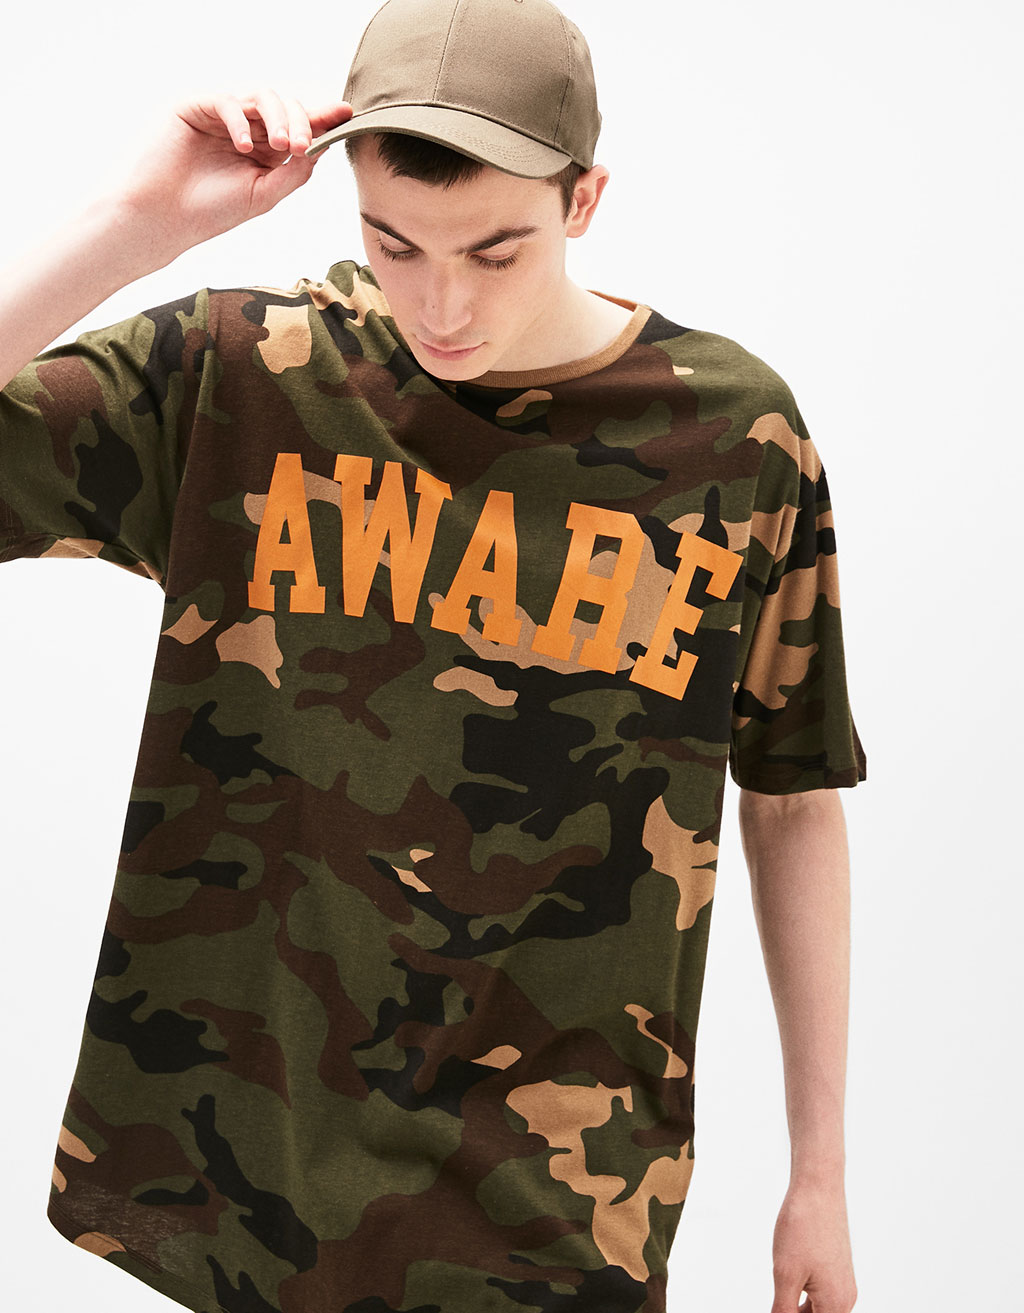 Camouflage T-shirt with slogan